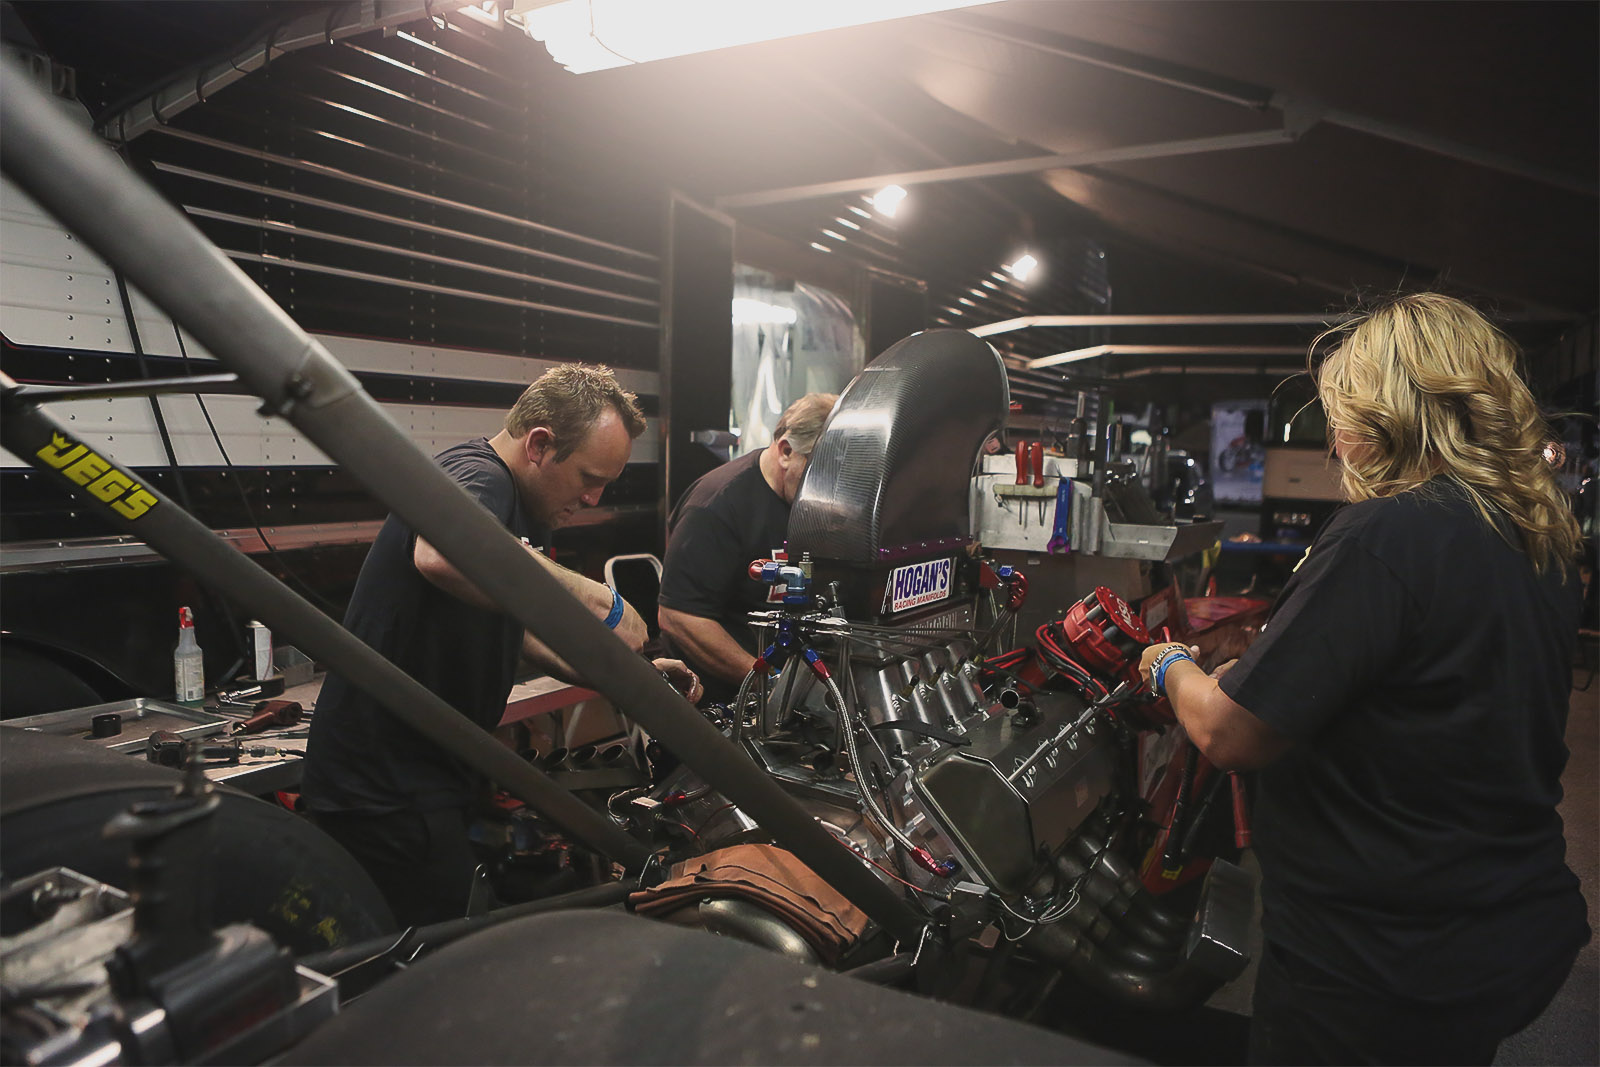 The Dreher Motorsports gang gets their 3,500 horsepower A/fuel dragster buttoned back up and ready for another day of qualifying tomorrow after a stout 5.39 second lap to kick off the weekend.